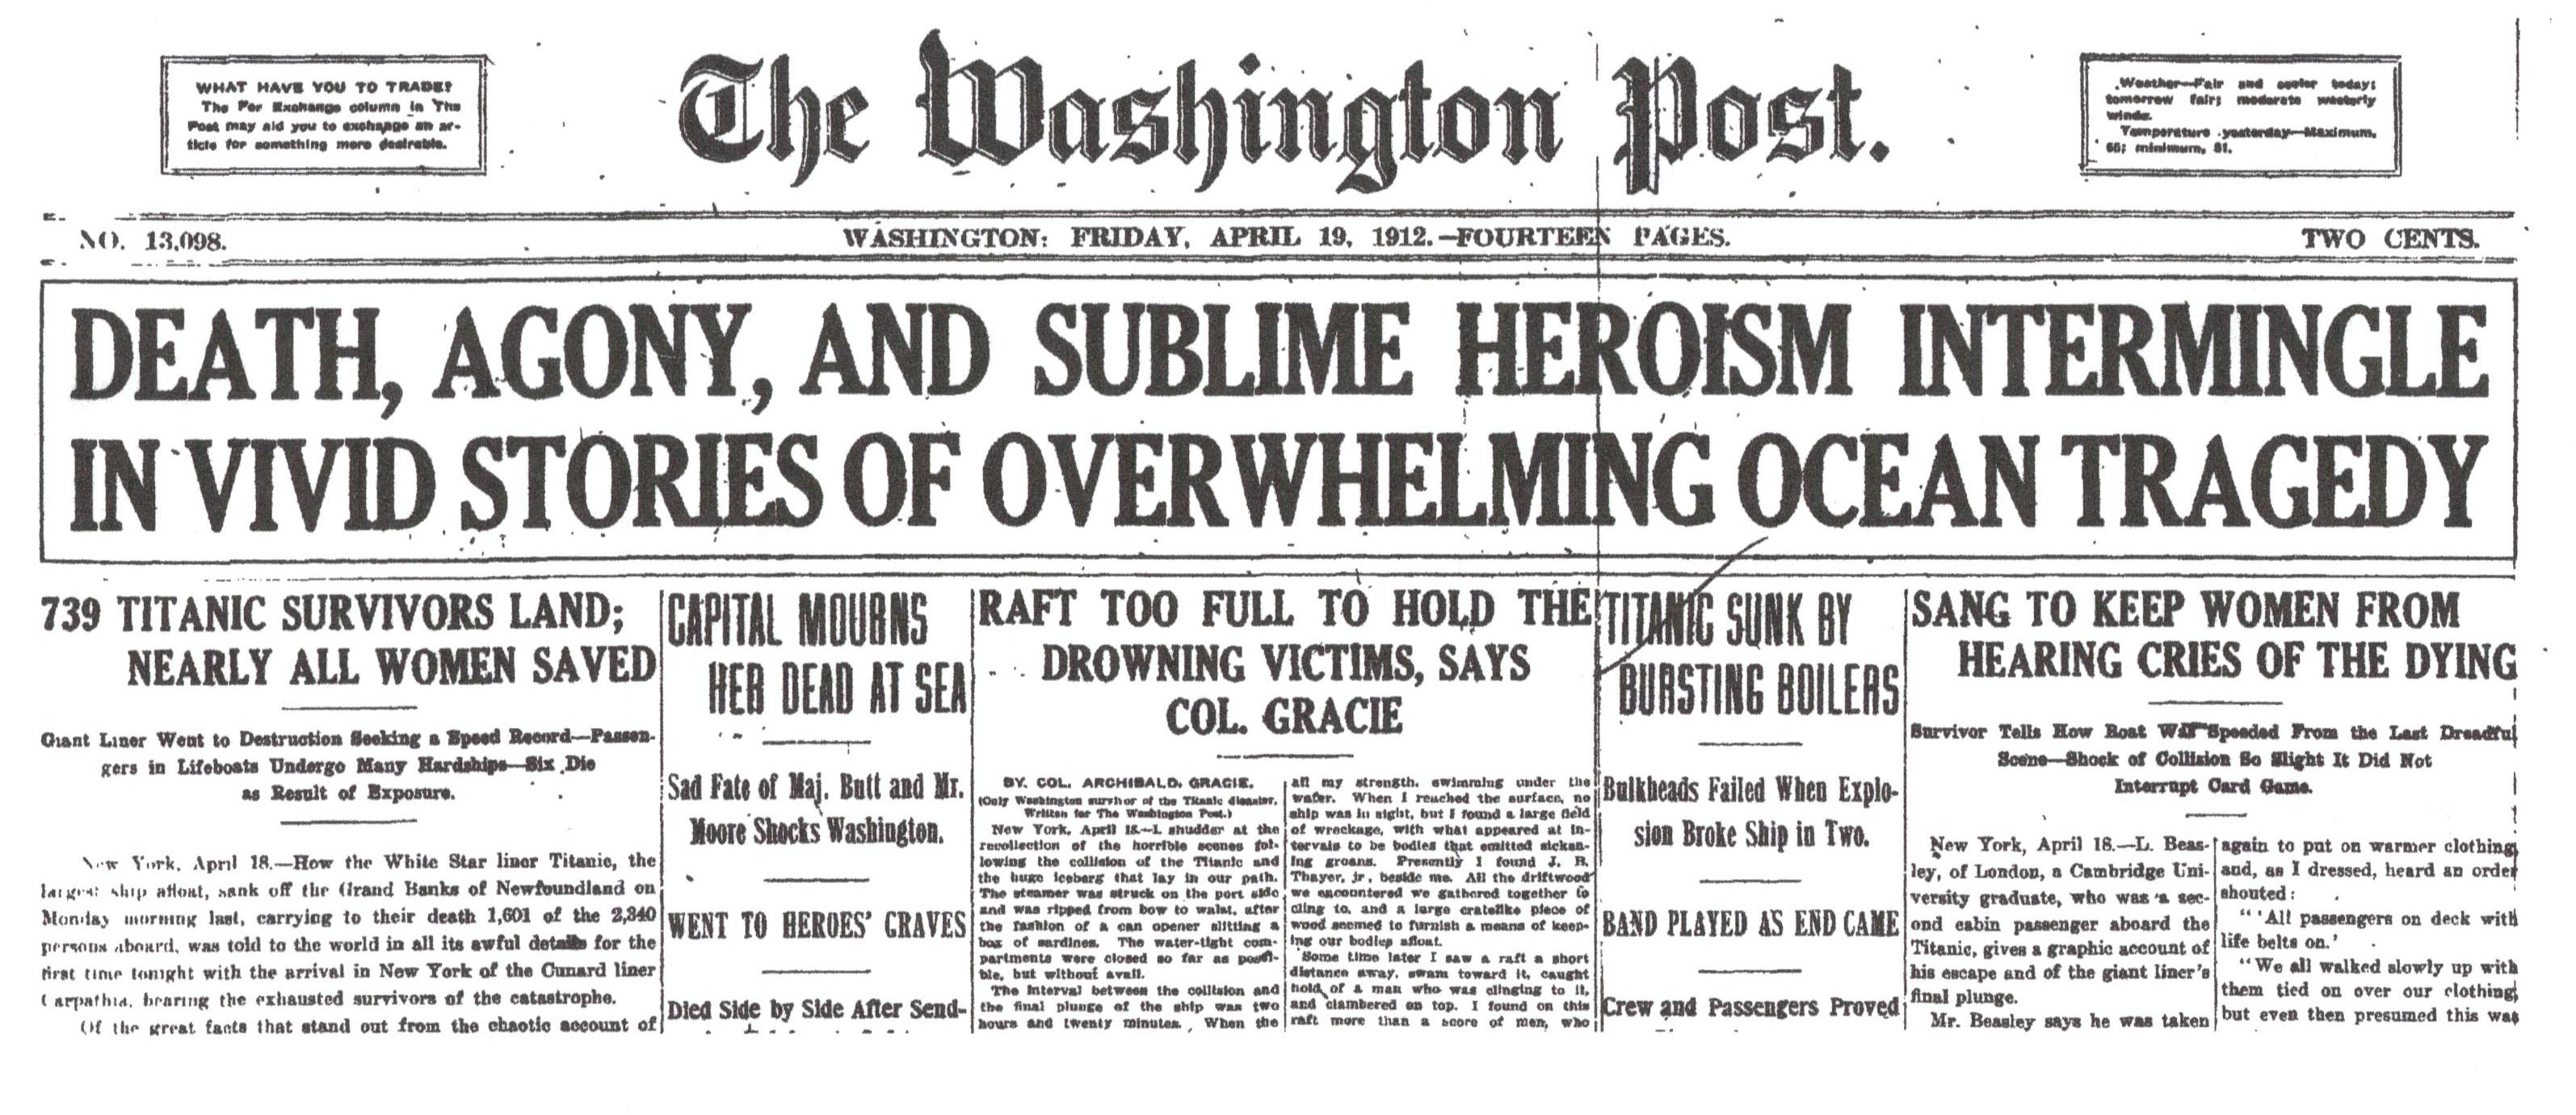 Washington Post, April 19, 1912